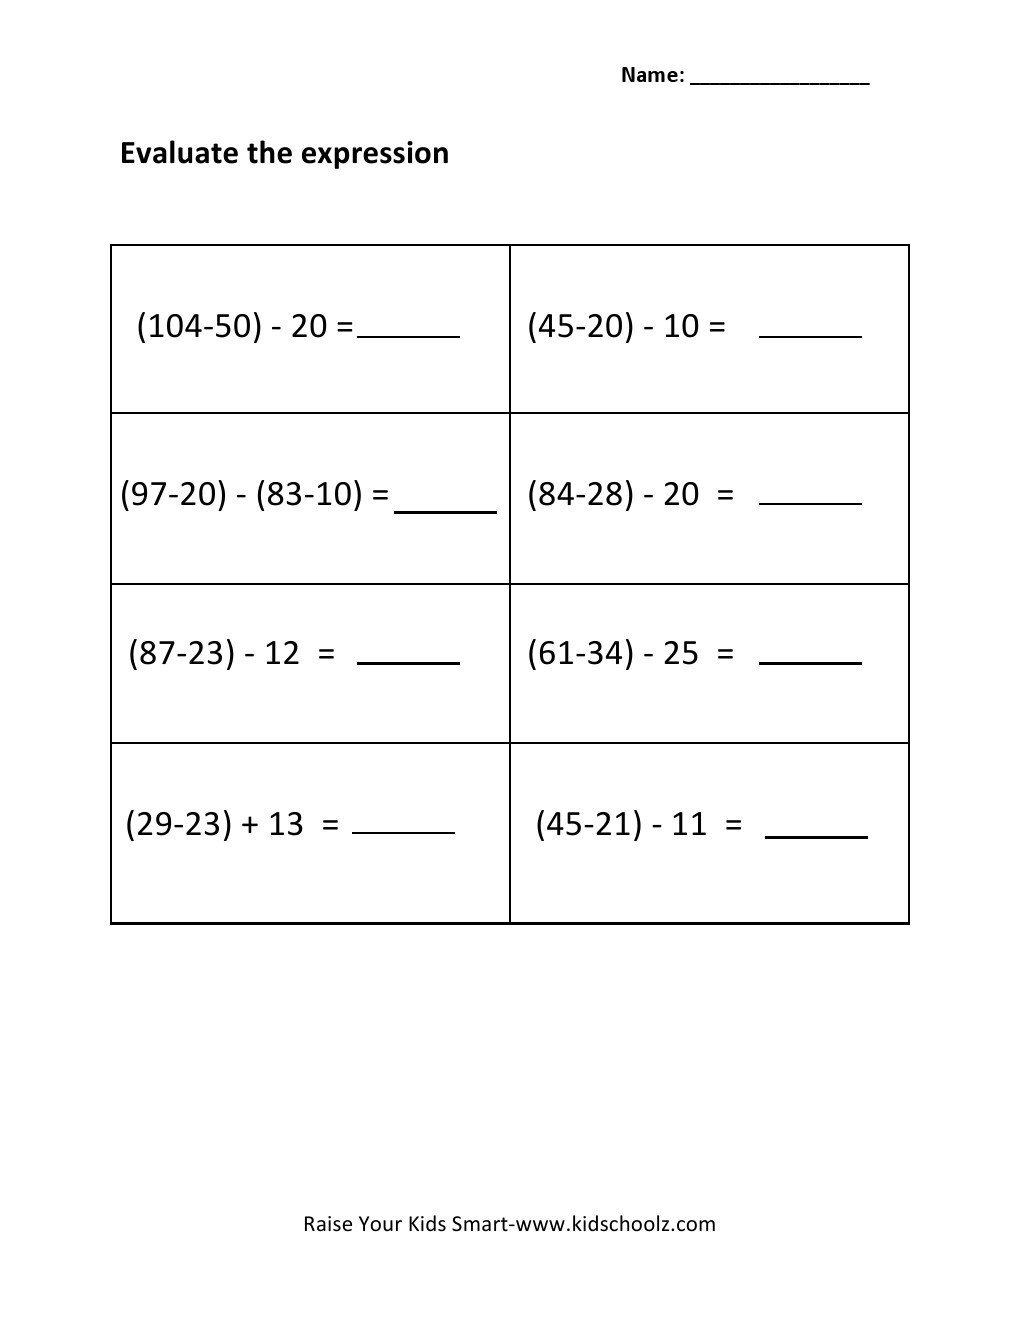 5th Grade Algebraic Expressions Worksheets Grade 3 Evaluating Algebraic Expressions Worksheet 3